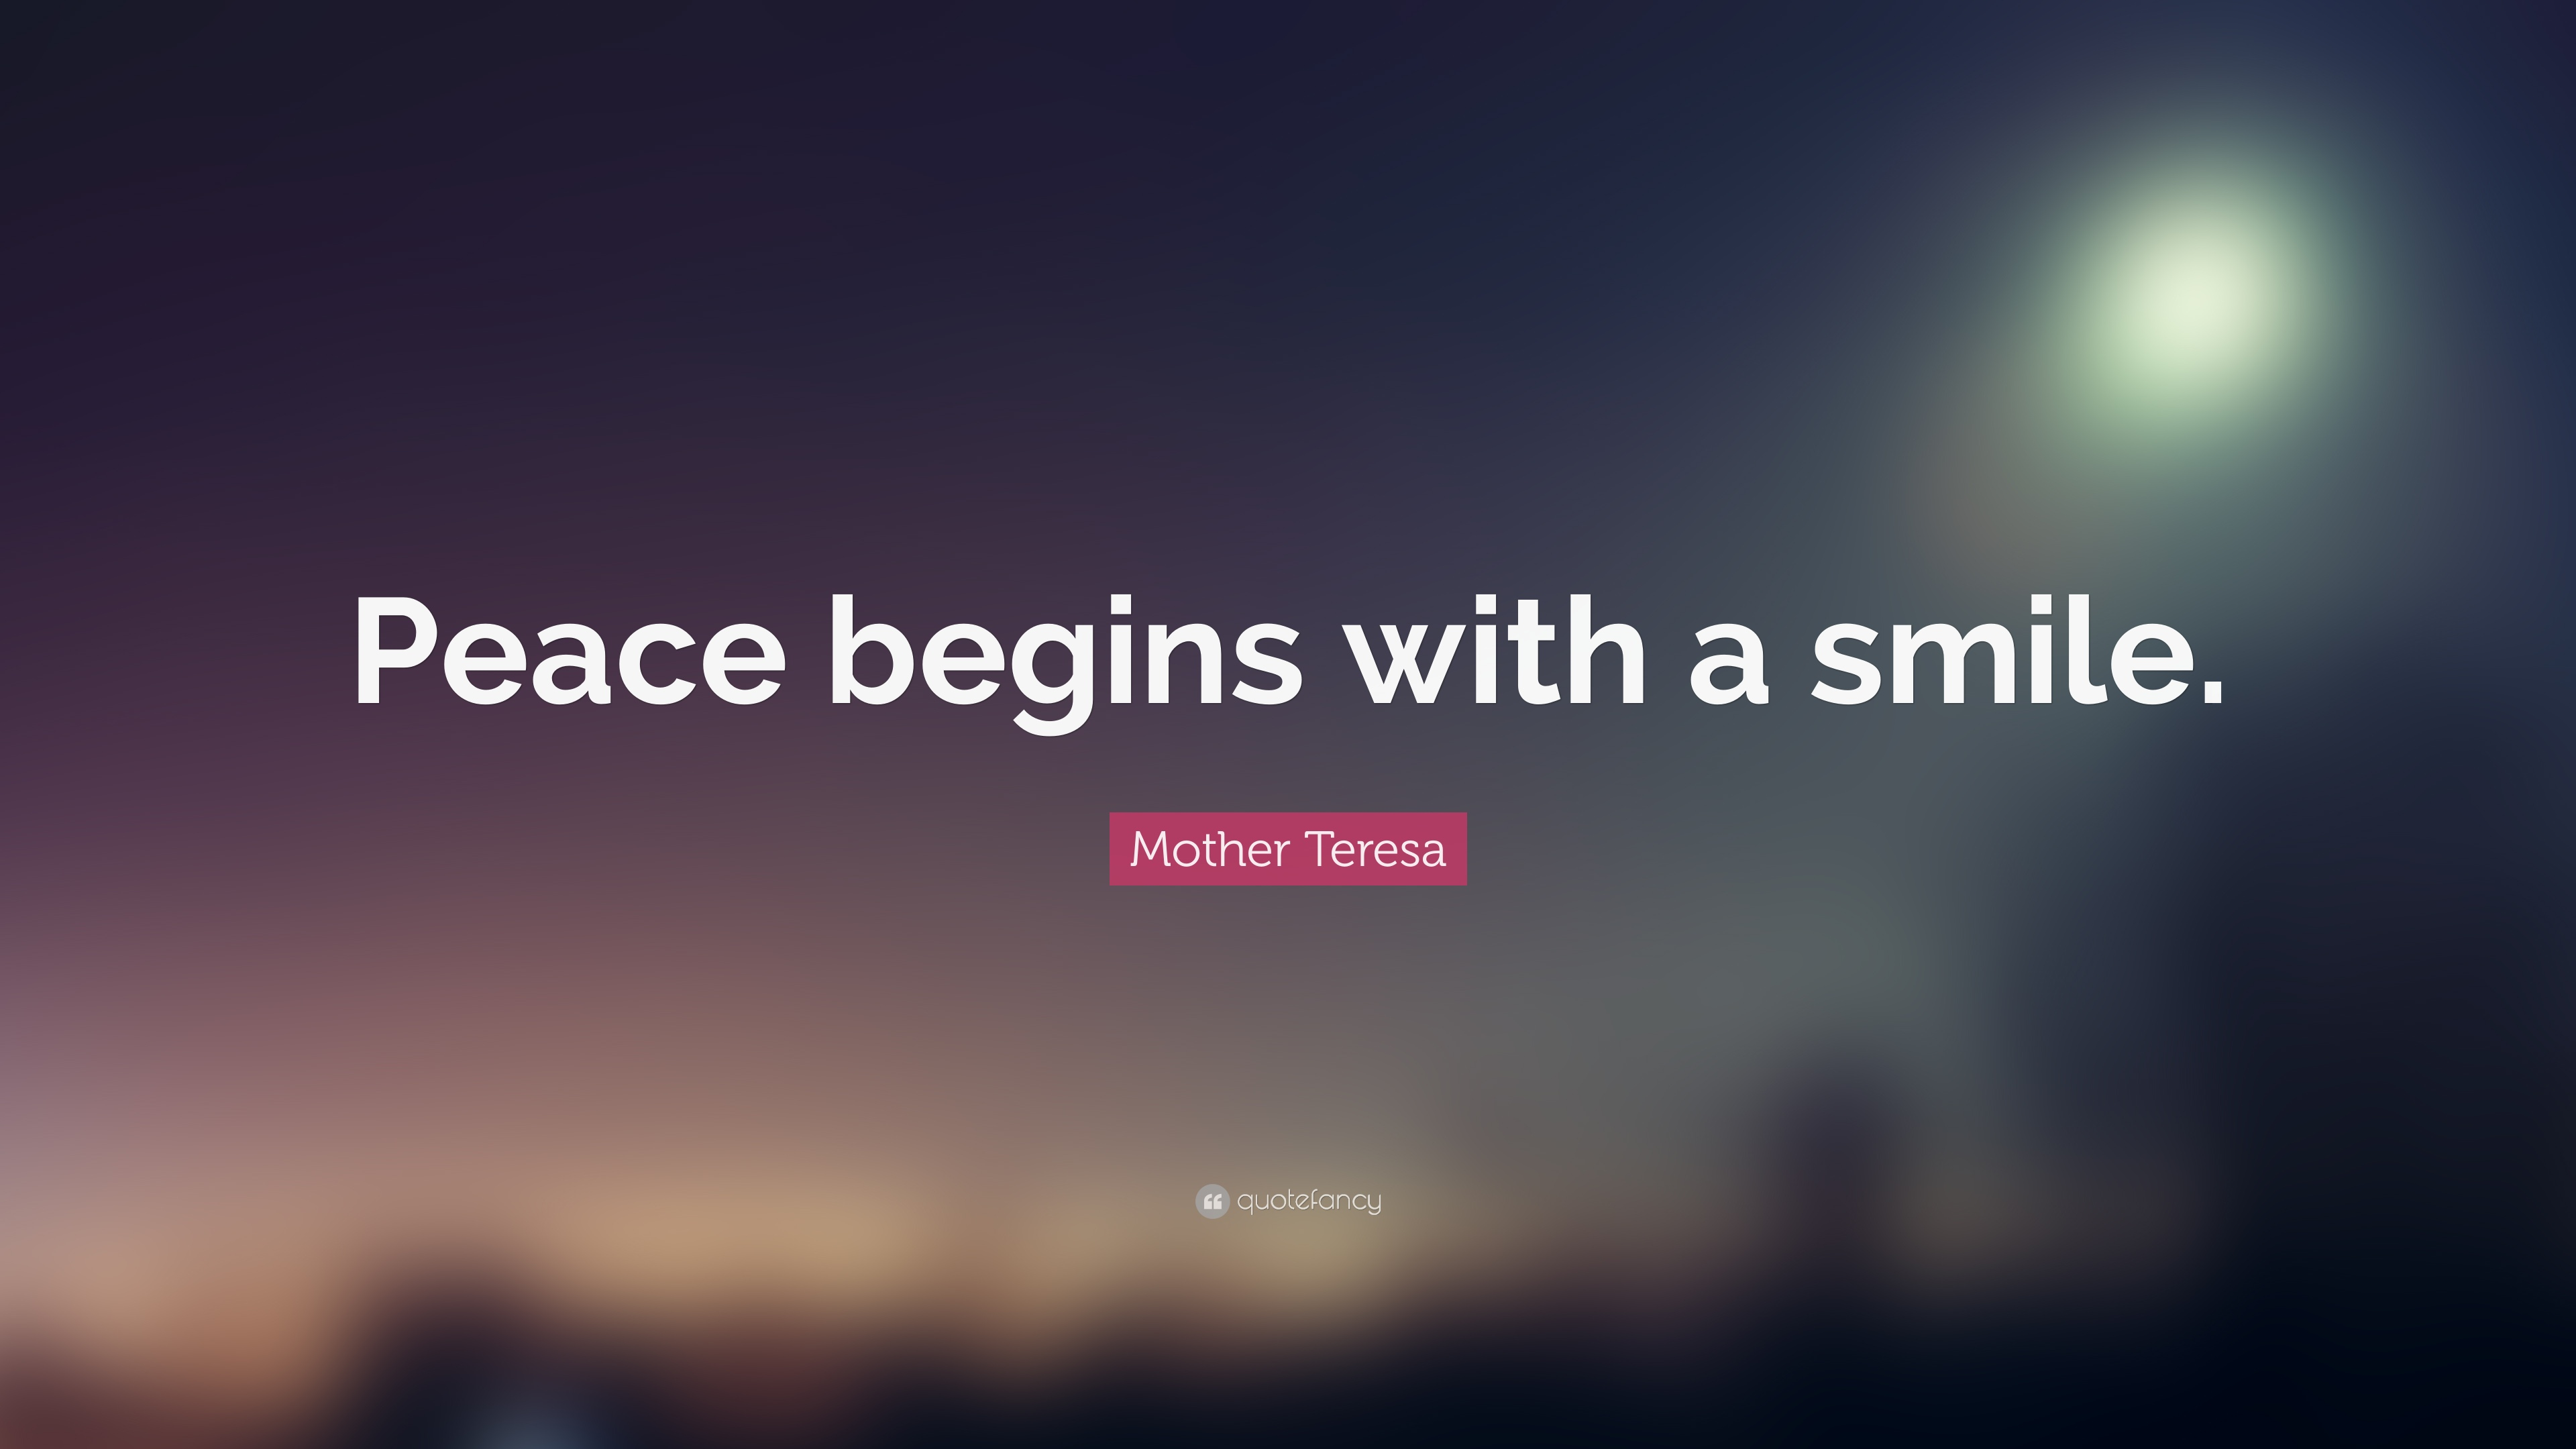 Beautiful Birthday Wallpapers With Quotes Mother Teresa Quote Peace Begins With A Smile 25